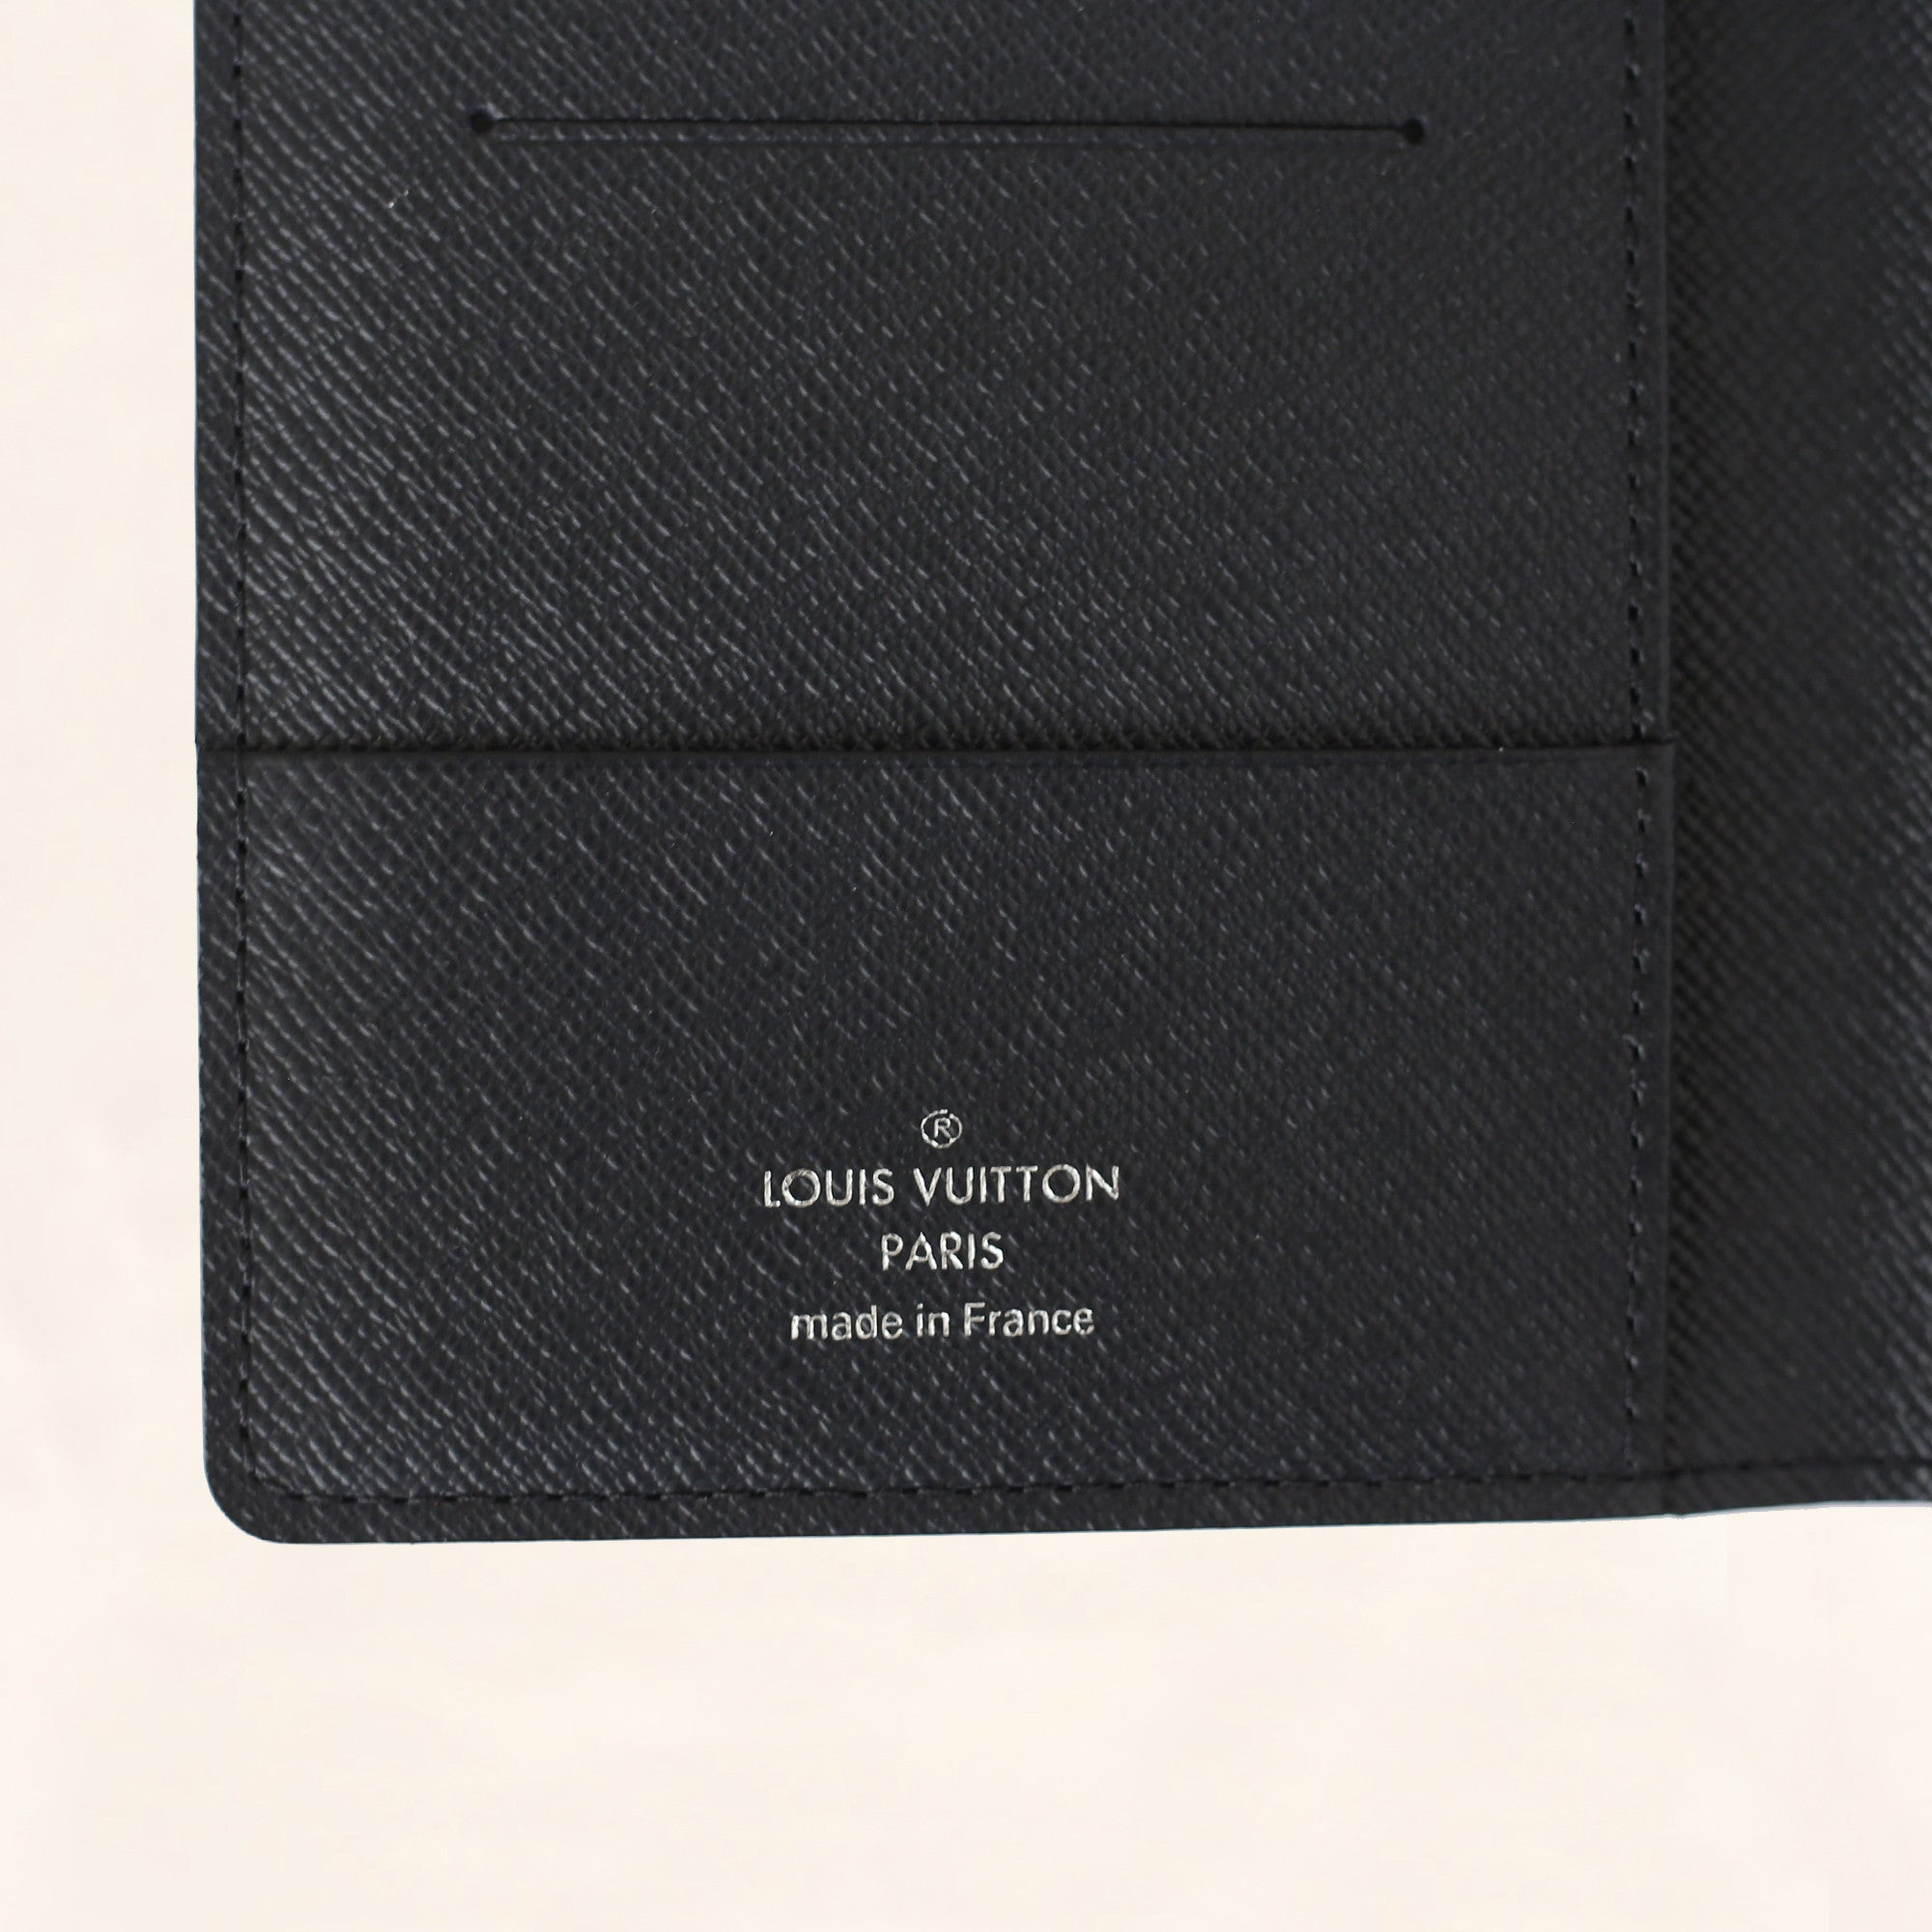 f4dc66bf89c Louis vuitton monogram chapman brothers passport cover one size the  collectory jpg 2000x2000 Louis vuitton passport